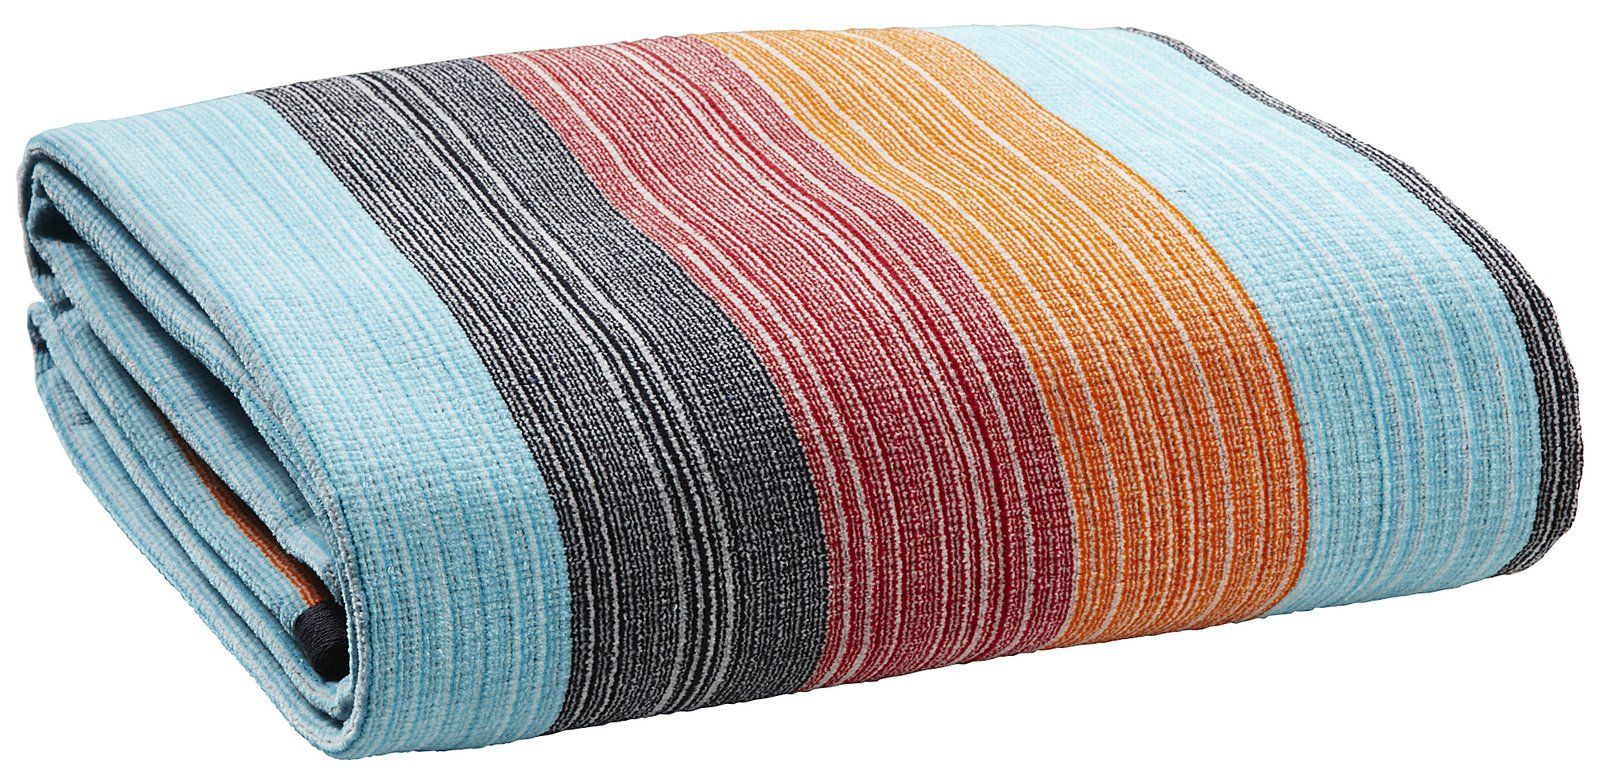 Kassatex Spiaggia Ombre Anti-Sand Beach Towel-Multicolor - casa.com